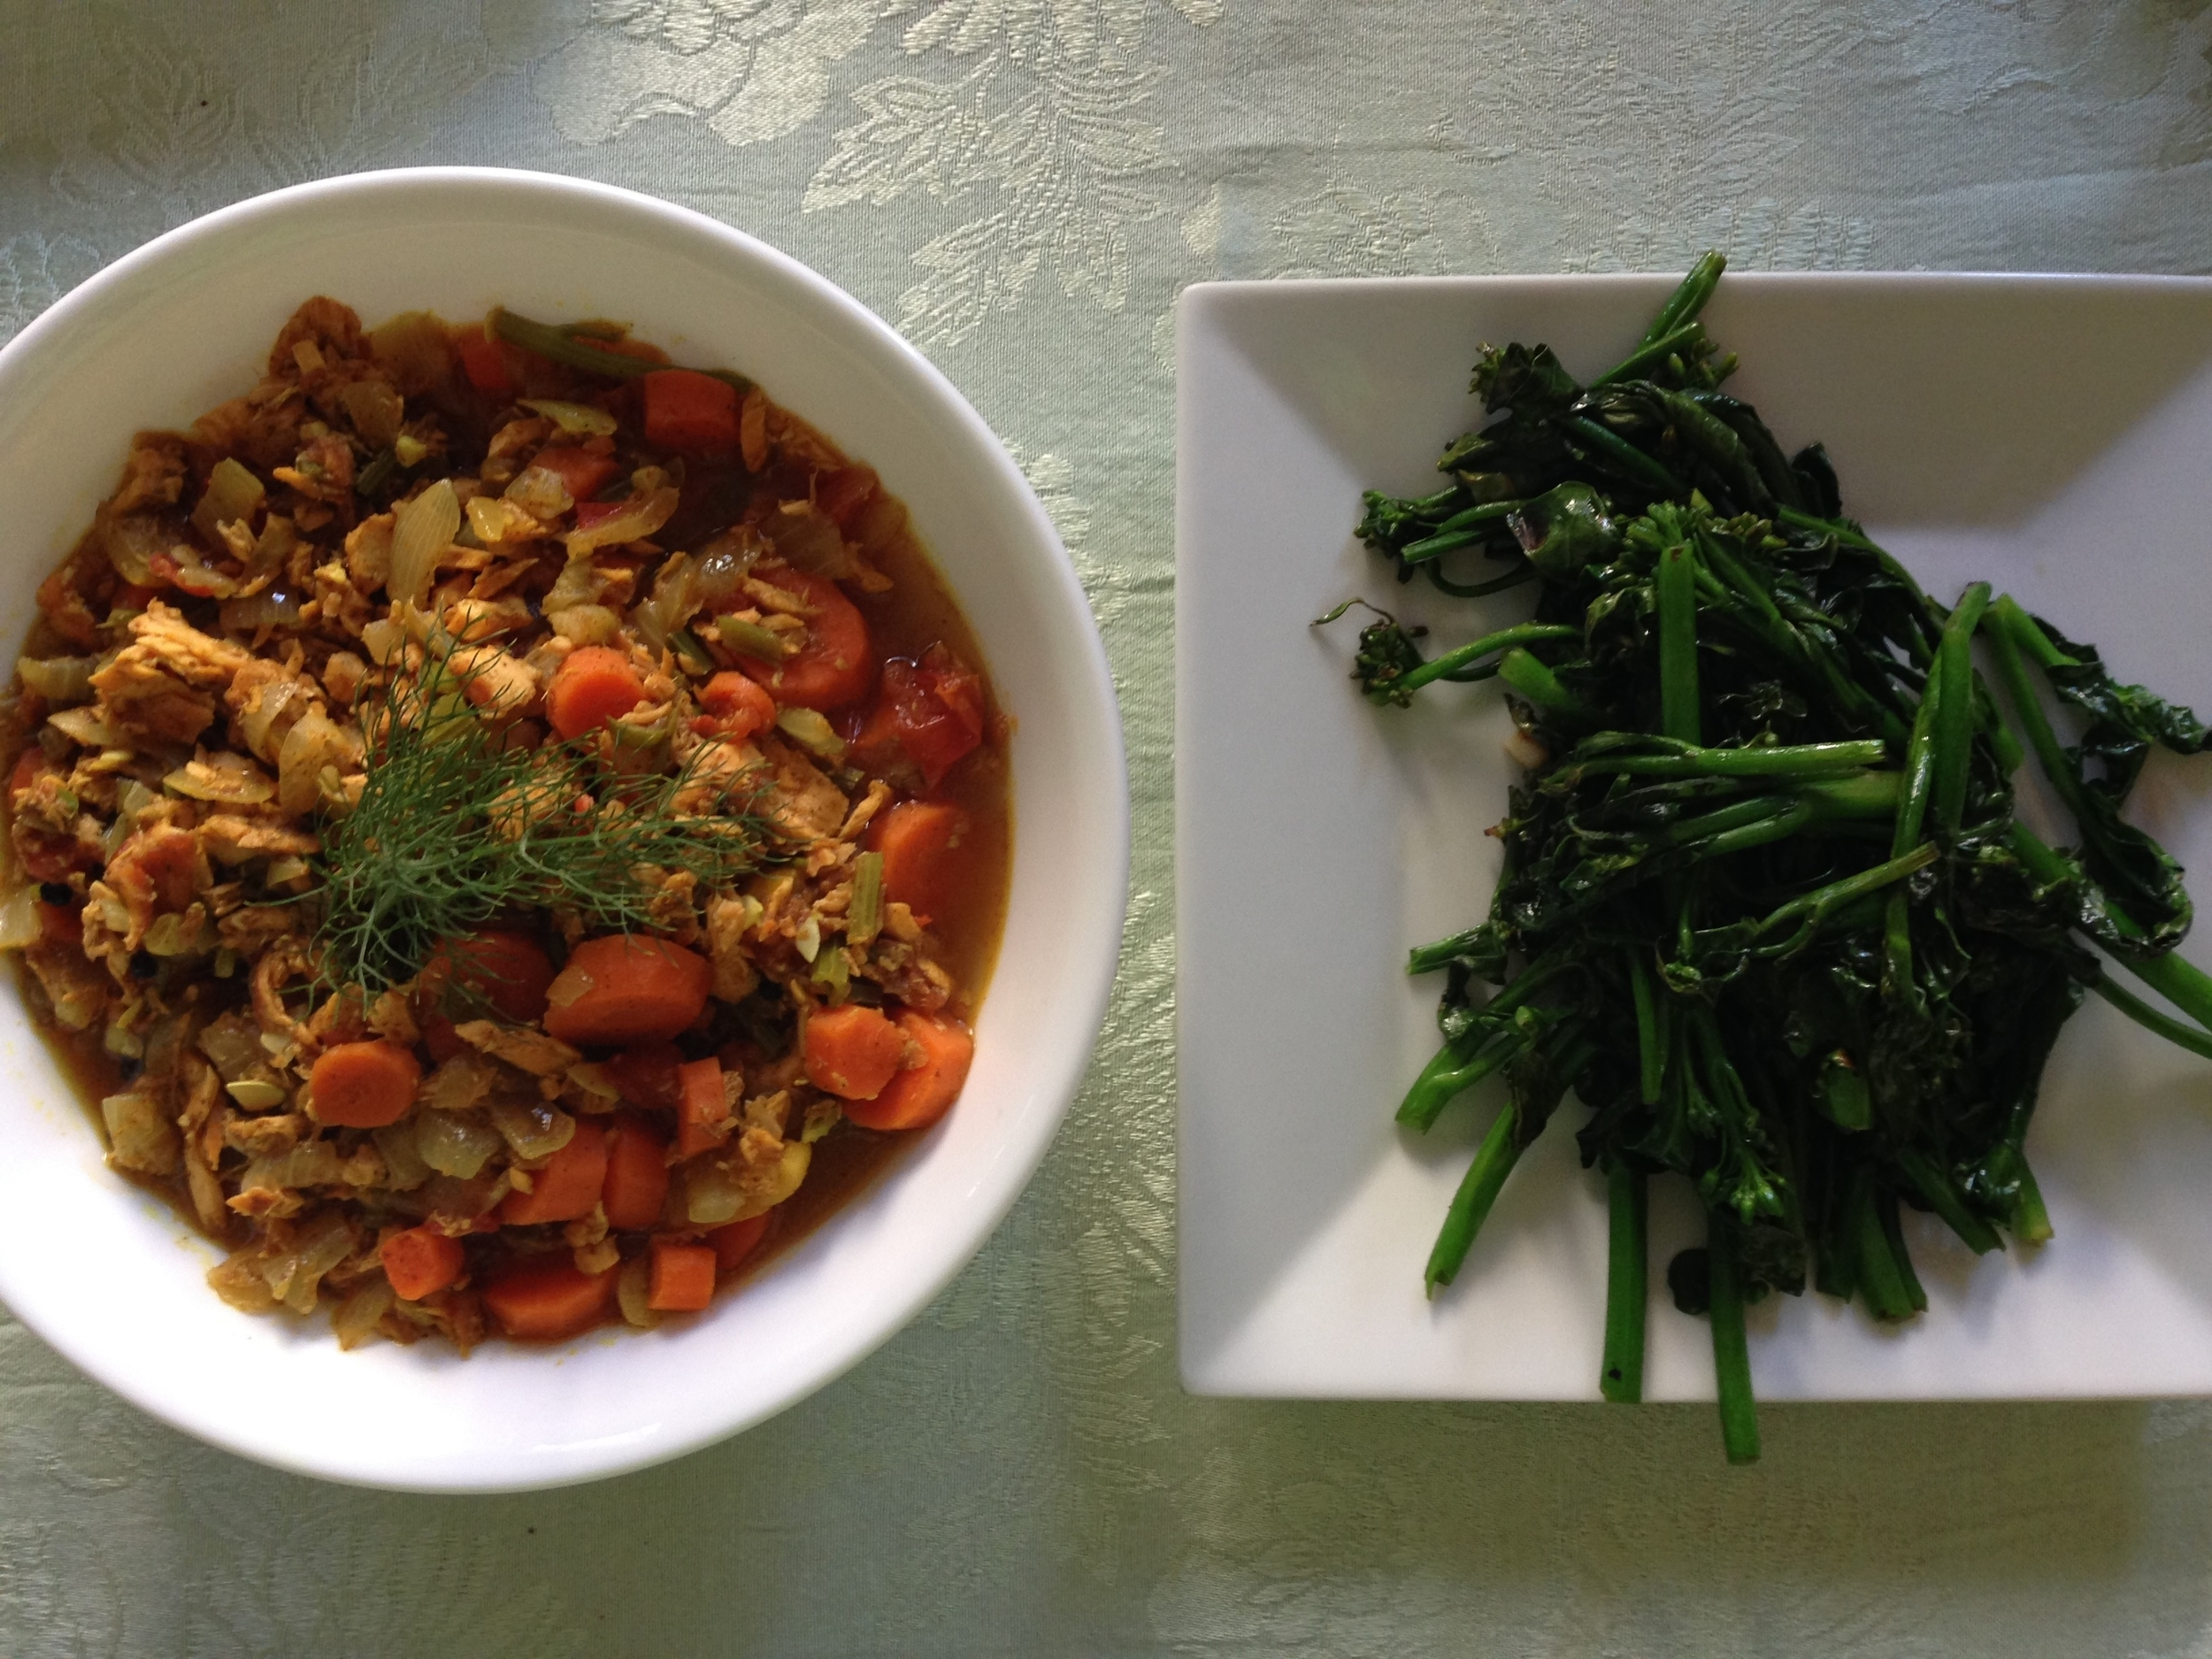 quick salmon leftovers curry with broccolini - approaching paleo